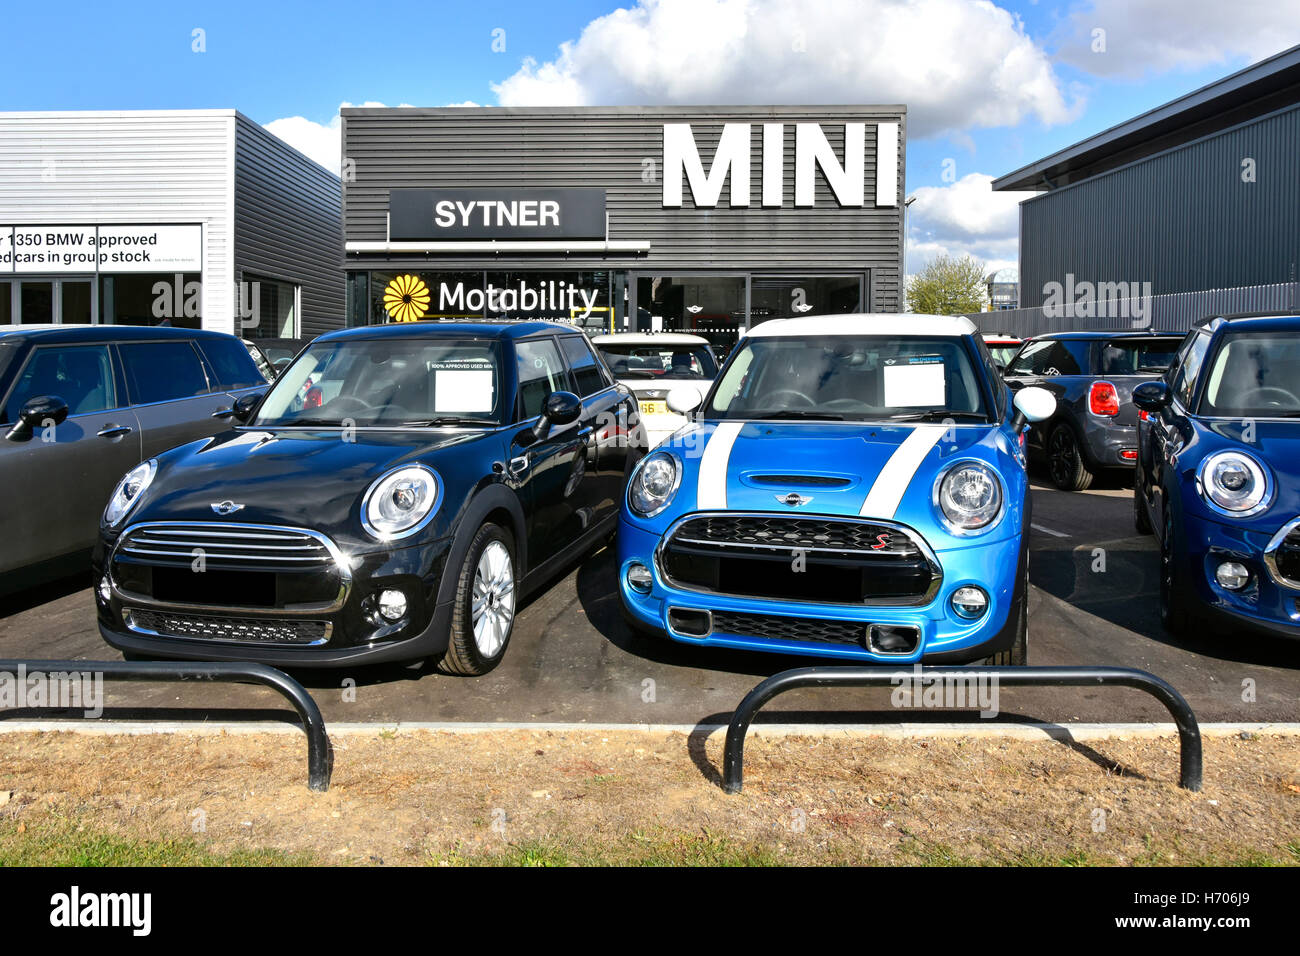 Second hand used car dealer of BMW Mini cars for sale on forecourt outside showrooms of Sytner dealership London - Stock Image